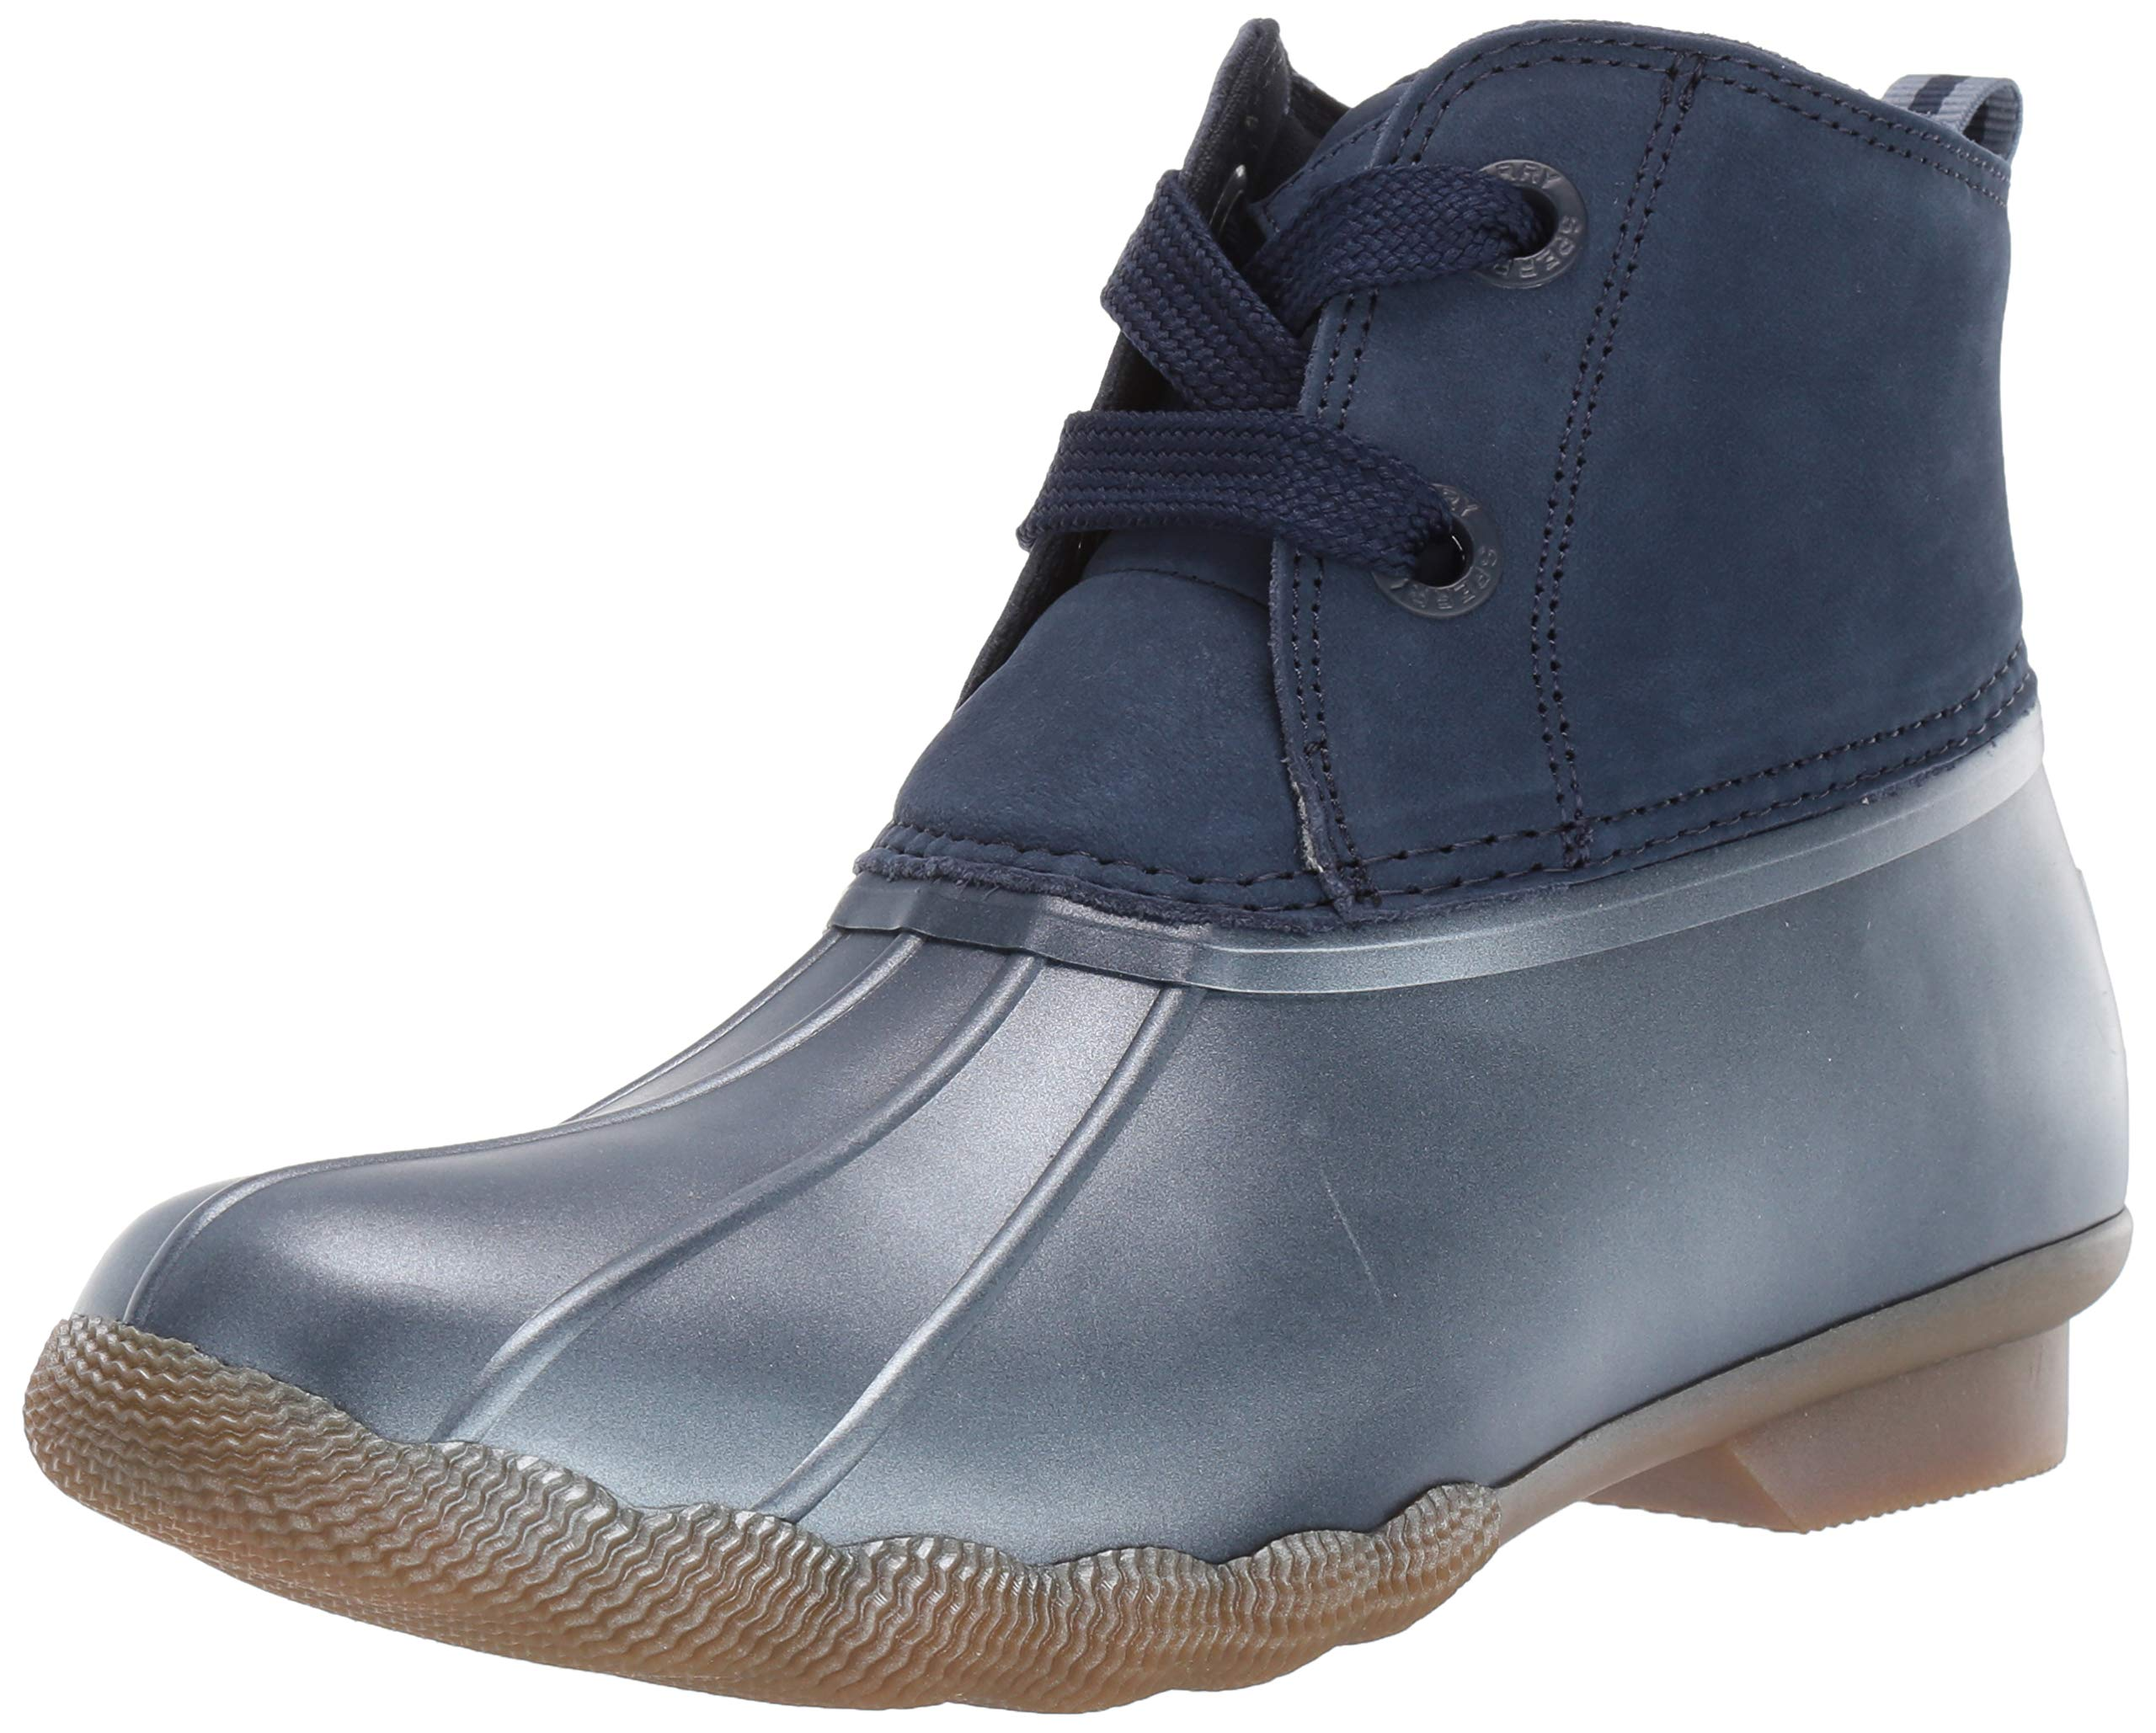 SPERRY Women's Saltwater 2-Eye Nubuck Snow Boot, Navy, 9 M US by SPERRY